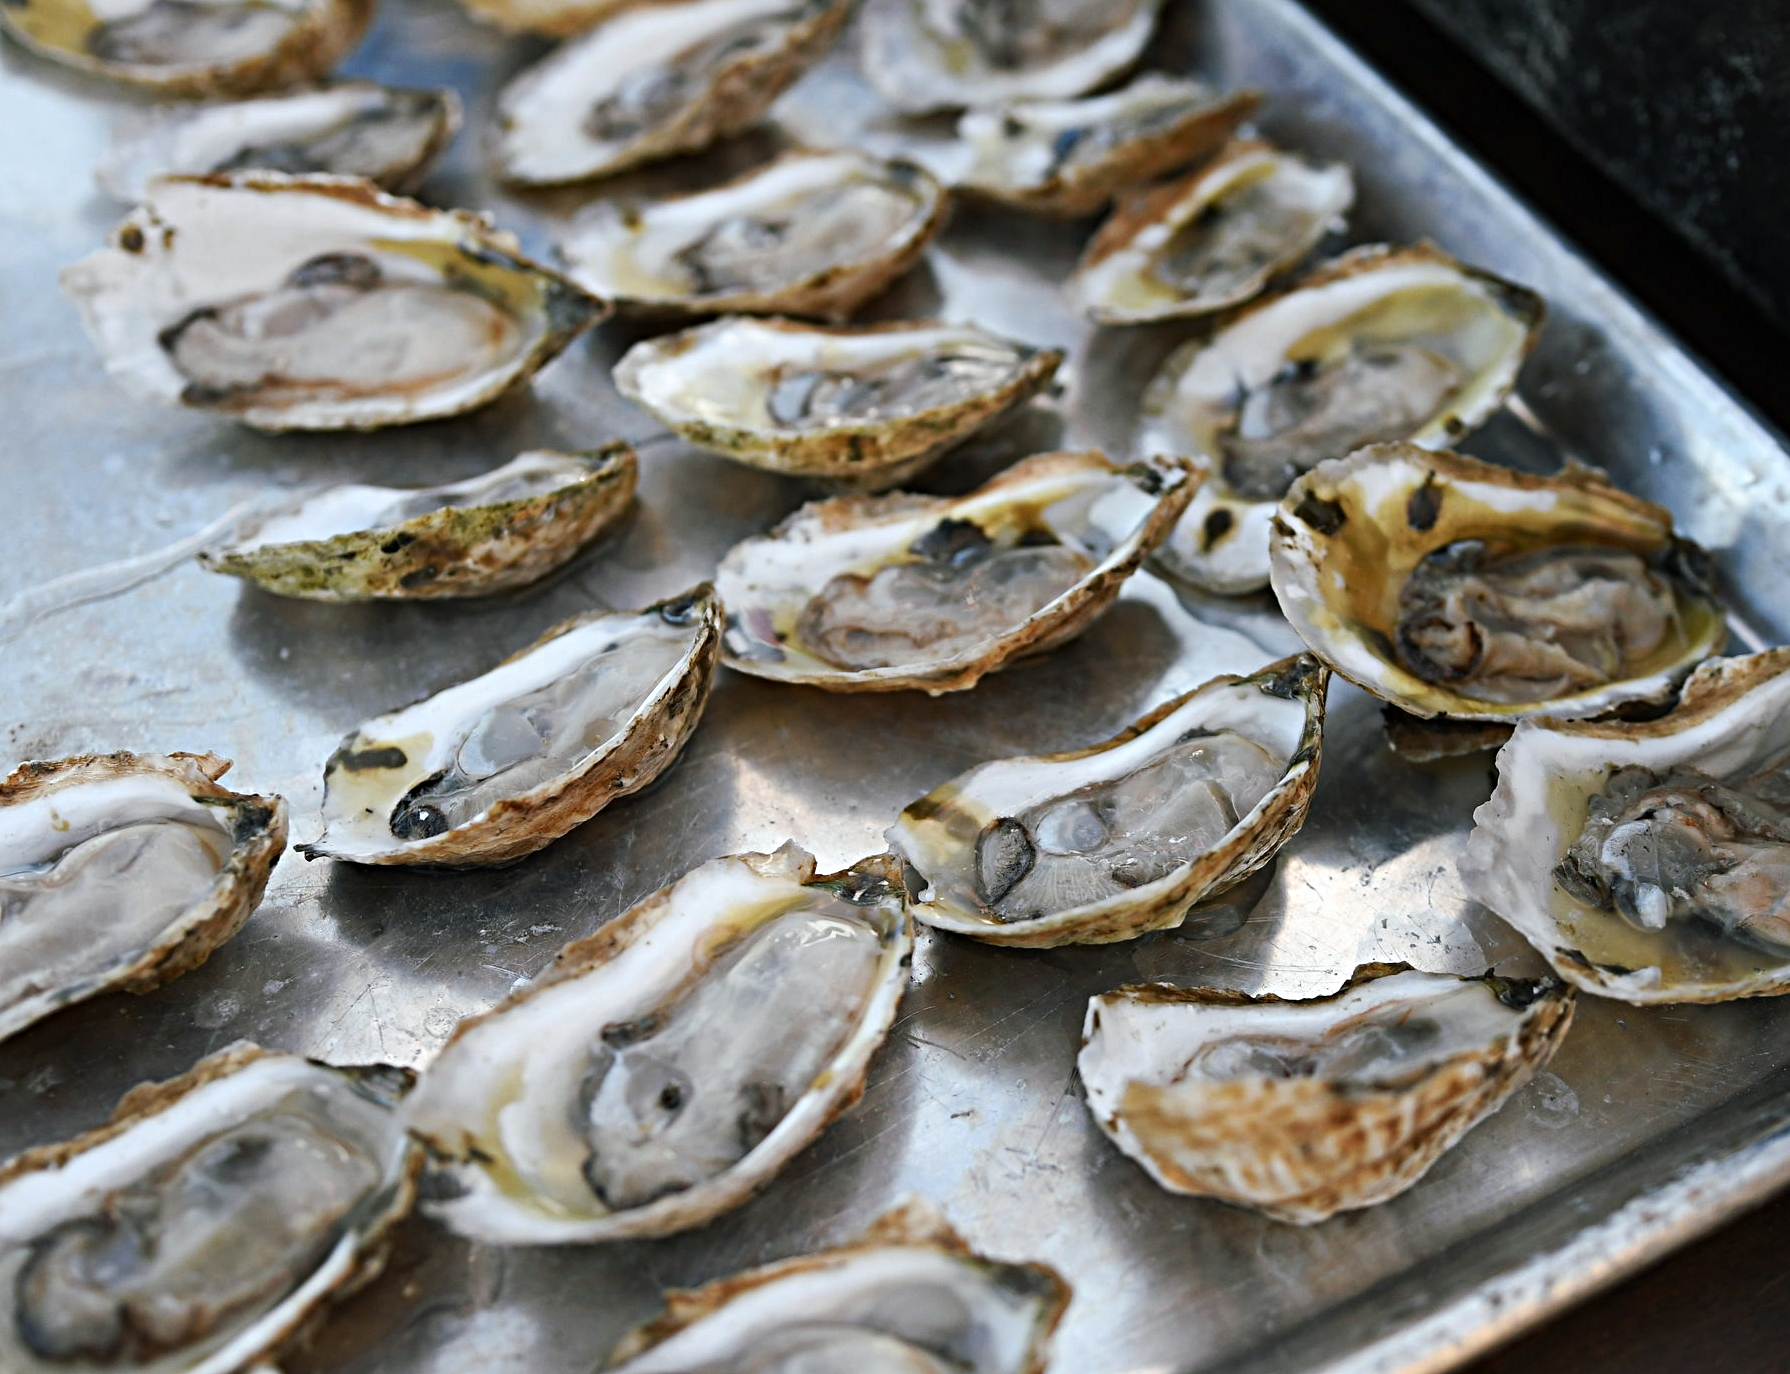 Chesapeake Gold oysters from Hoopers Island Oyster Company.